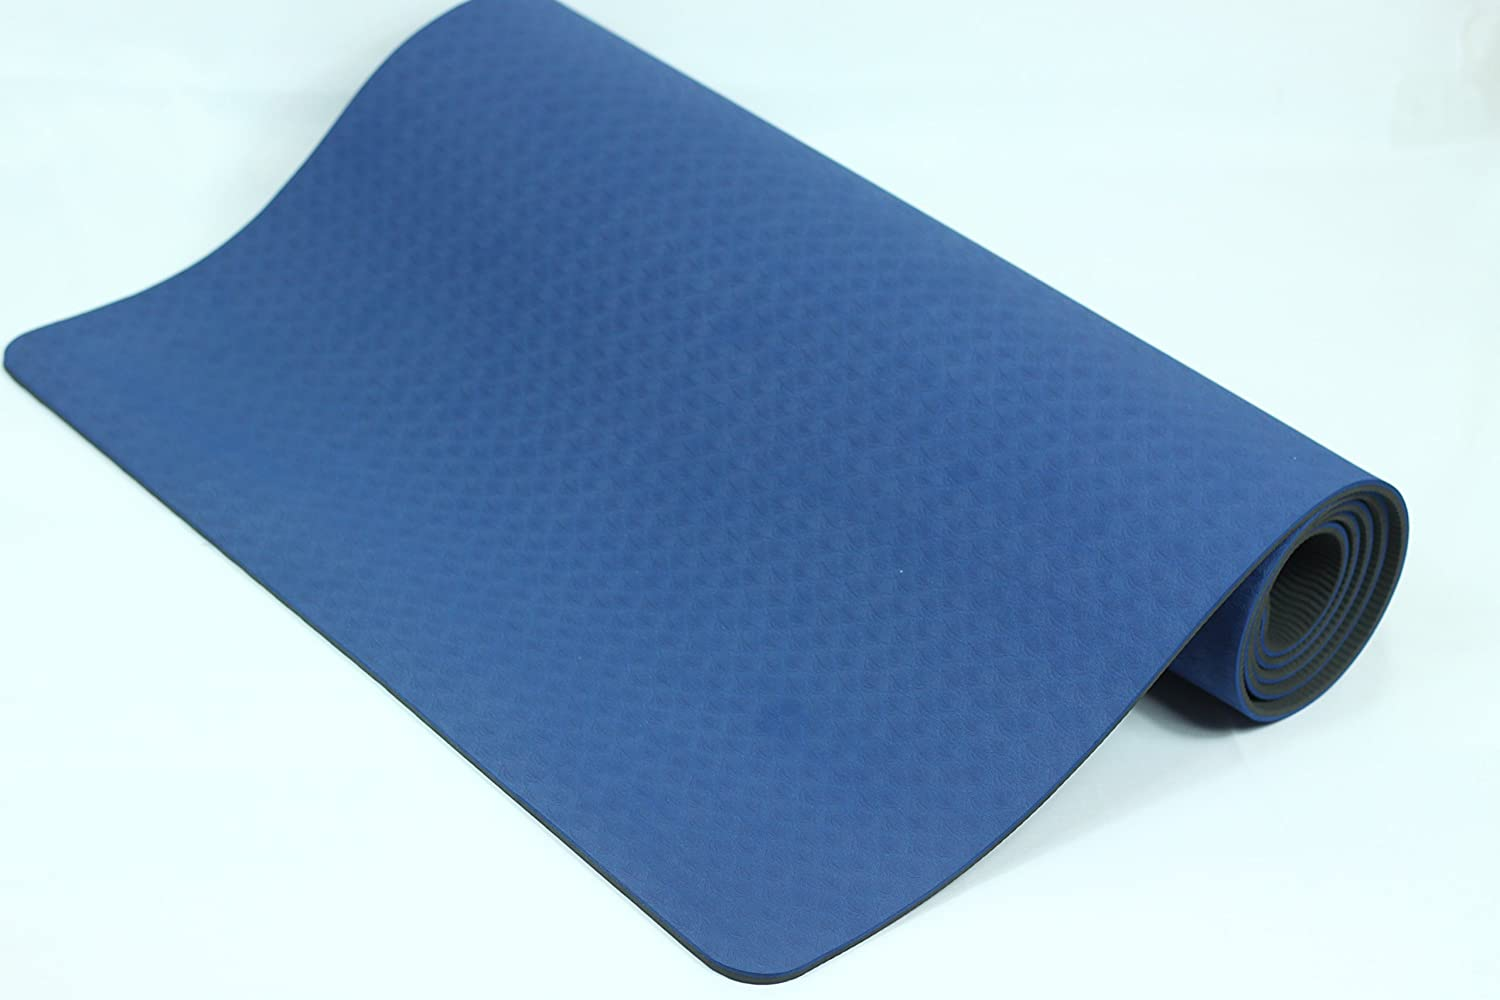 Dharmat TPE YOGA MAT – eco riendly yoga mat double layerd 6 mm 72 X 24 anti slip, light and easy to carry, 100 latex and PVC free